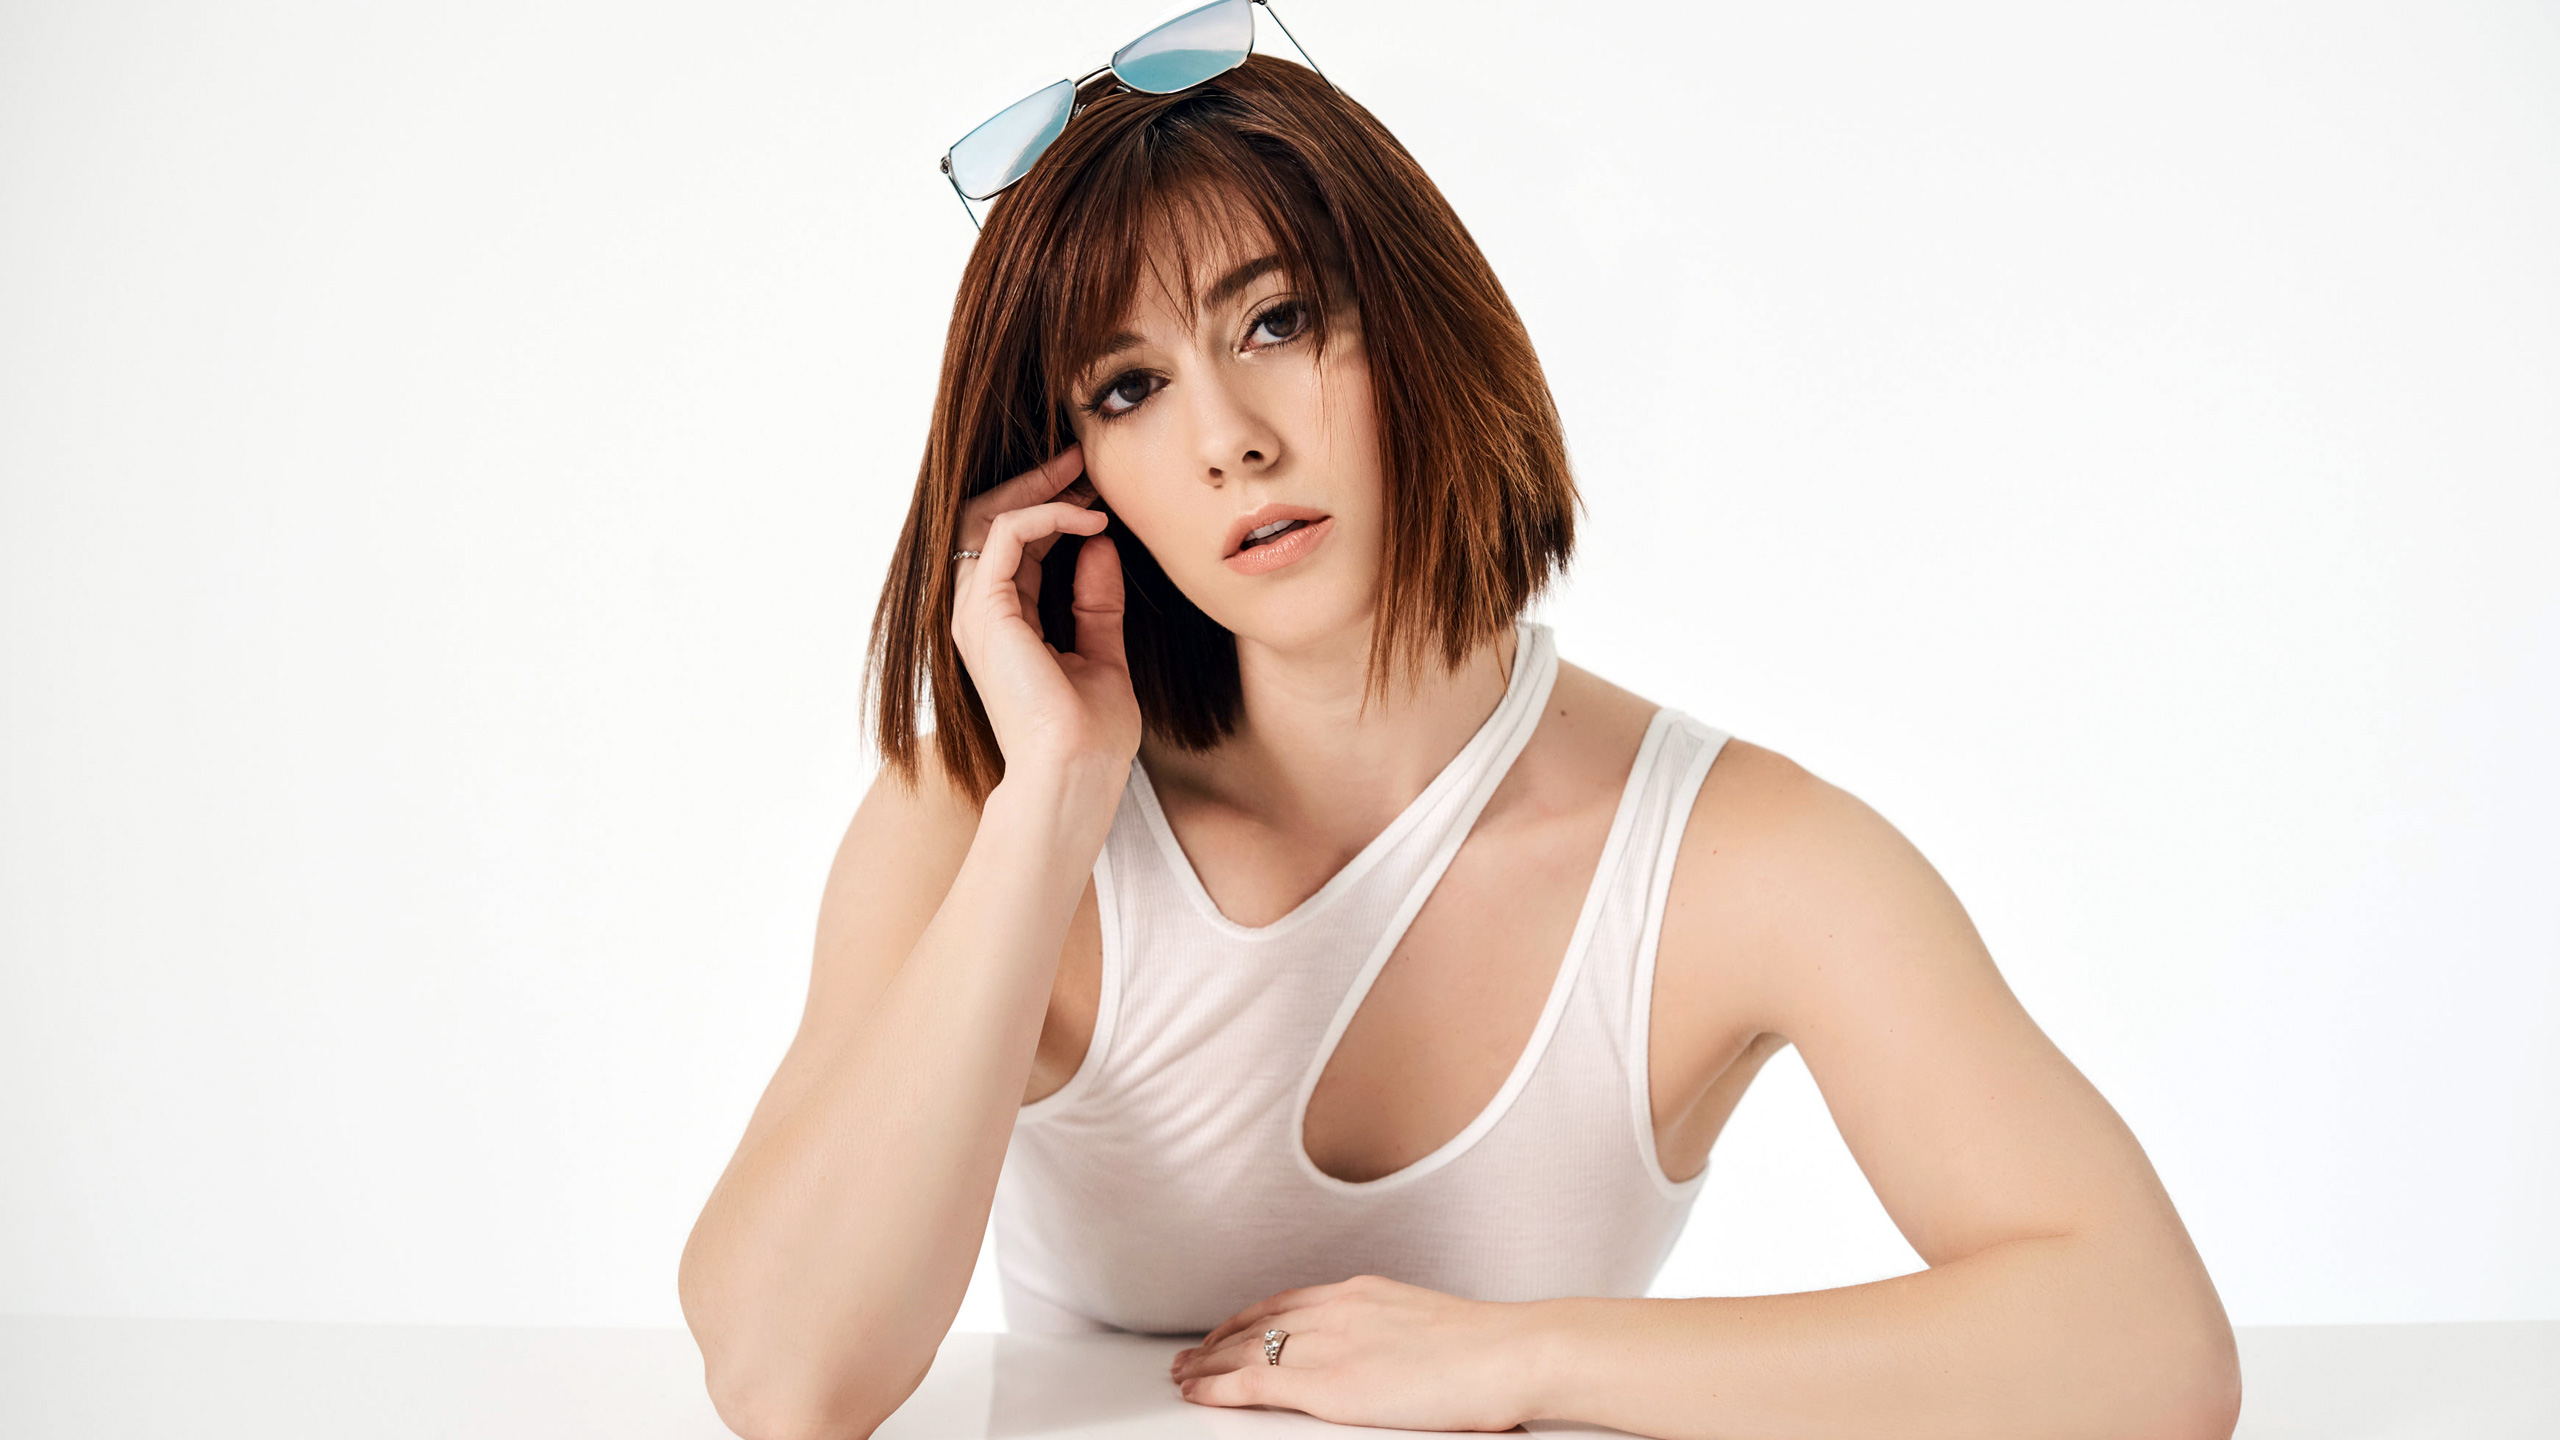 Mary Elizabeth Winstead 2016 wallpaper